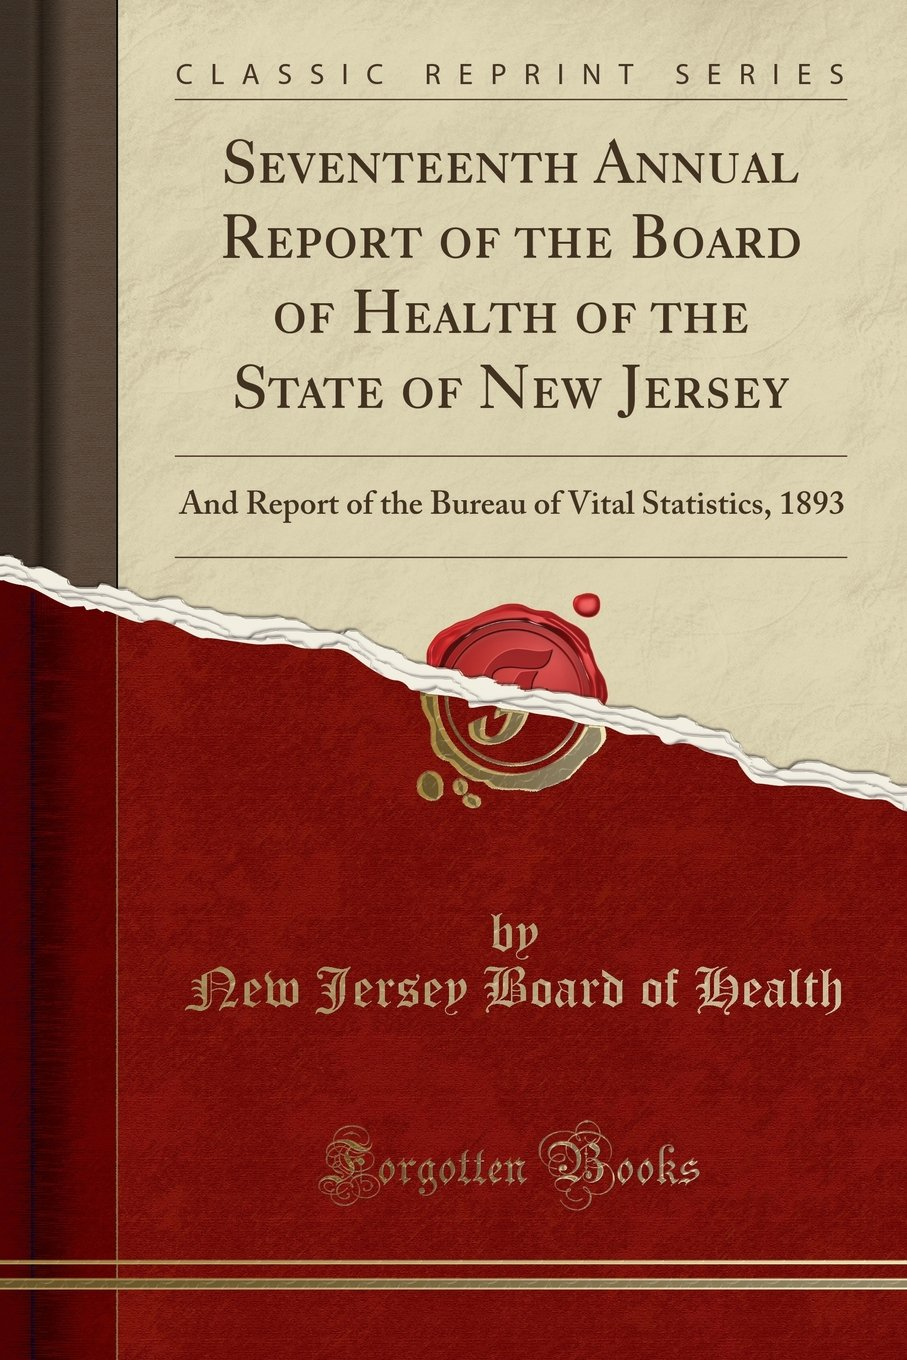 Download Seventeenth Annual Report of the Board of Health of the State of New Jersey: And Report of the Bureau of Vital Statistics, 1893 (Classic Reprint) ebook